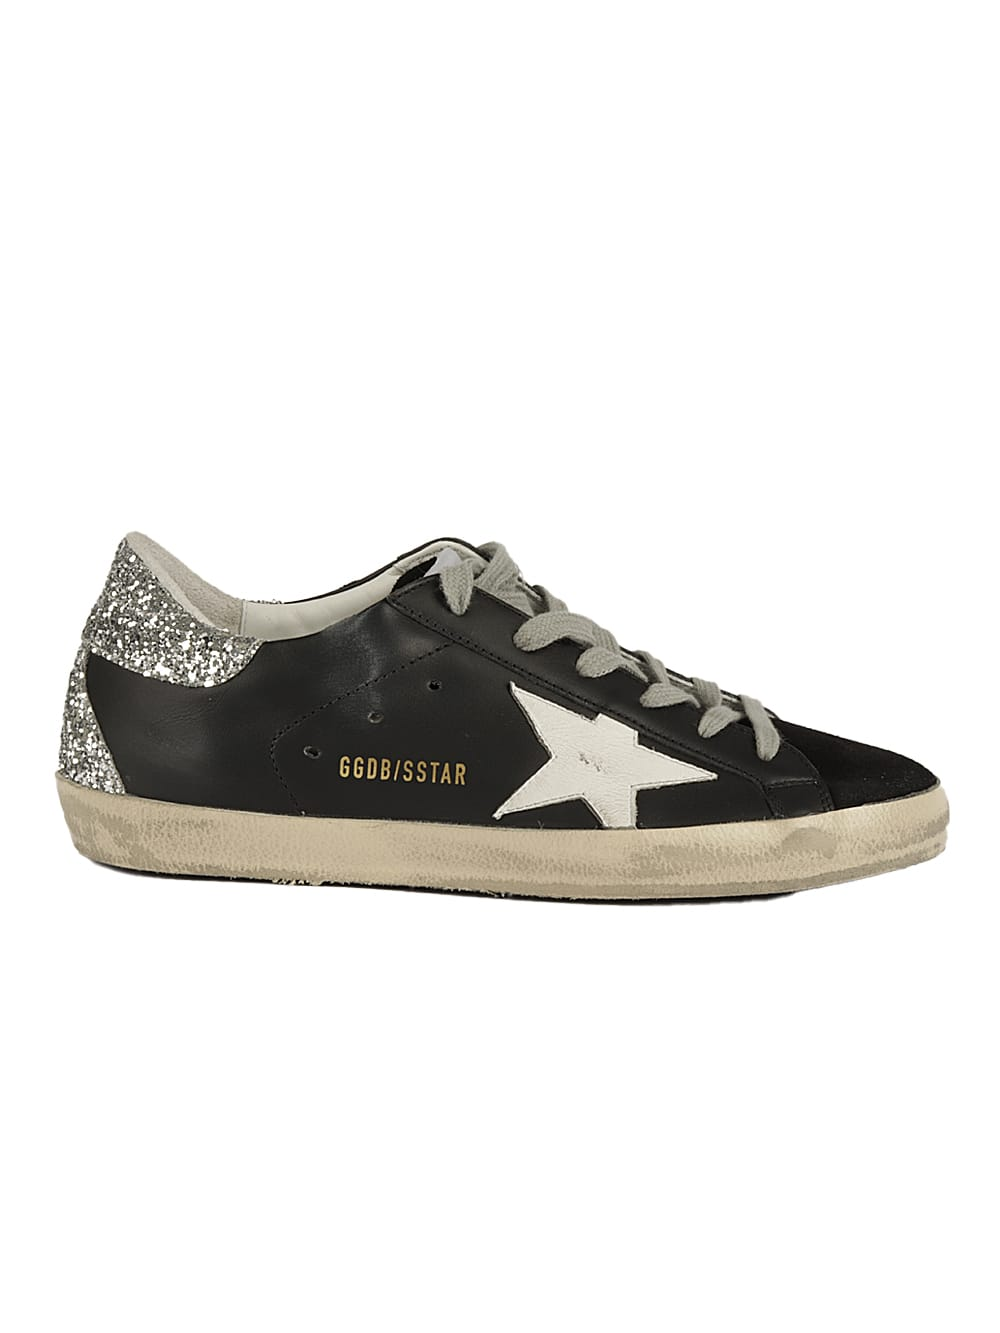 Buy Golden Goose Superstar Leather Upper And Star Suede Toe Glitter online, shop Golden Goose shoes with free shipping